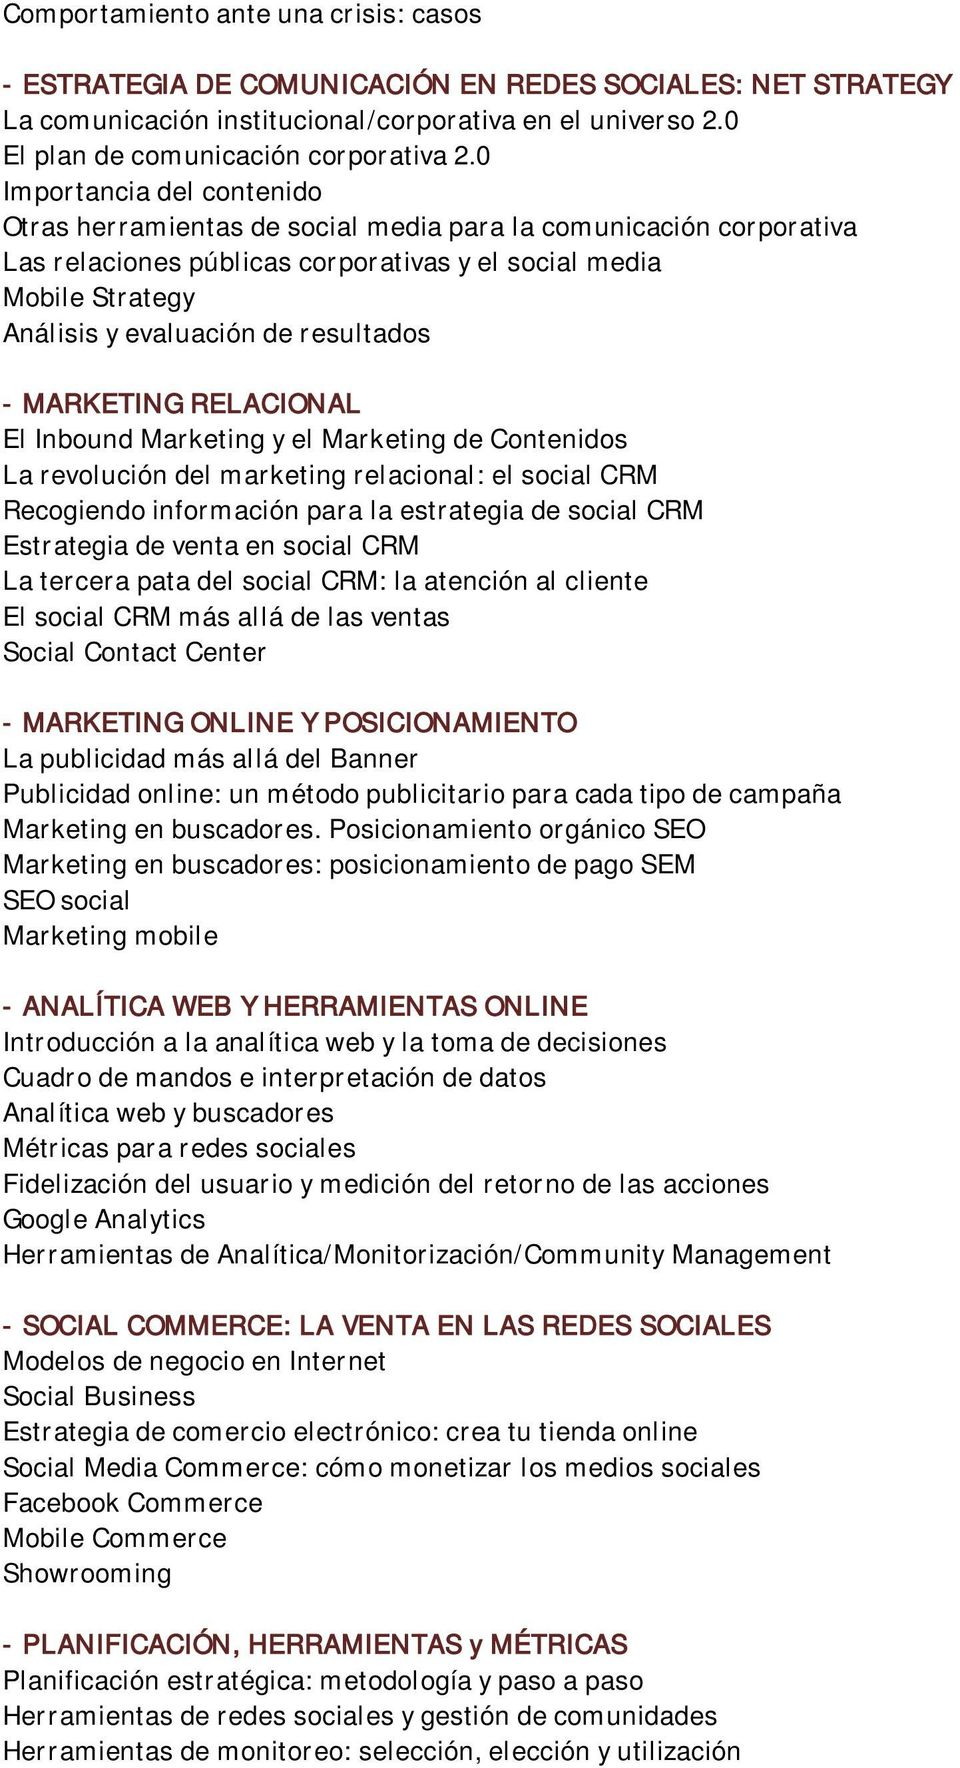 resultados - MARKETING RELACIONAL El Inbound Marketing y el Marketing de Contenidos La revolución del marketing relacional: el social CRM Recogiendo información para la estrategia de social CRM